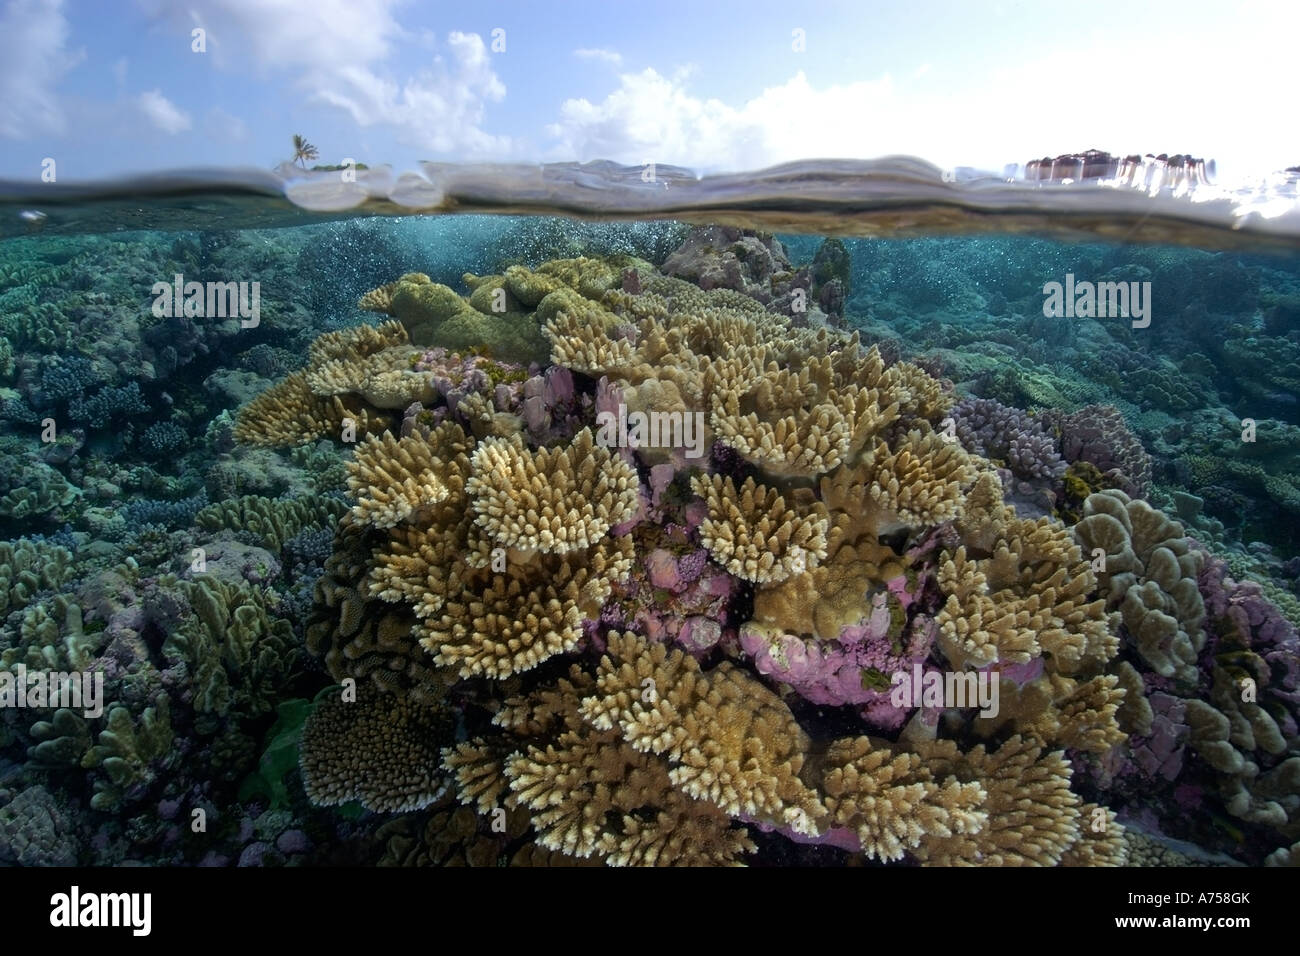 Split image of pristine coral reef and sky Rongelap Atoll Marshall Islands Micronesia - Stock Image